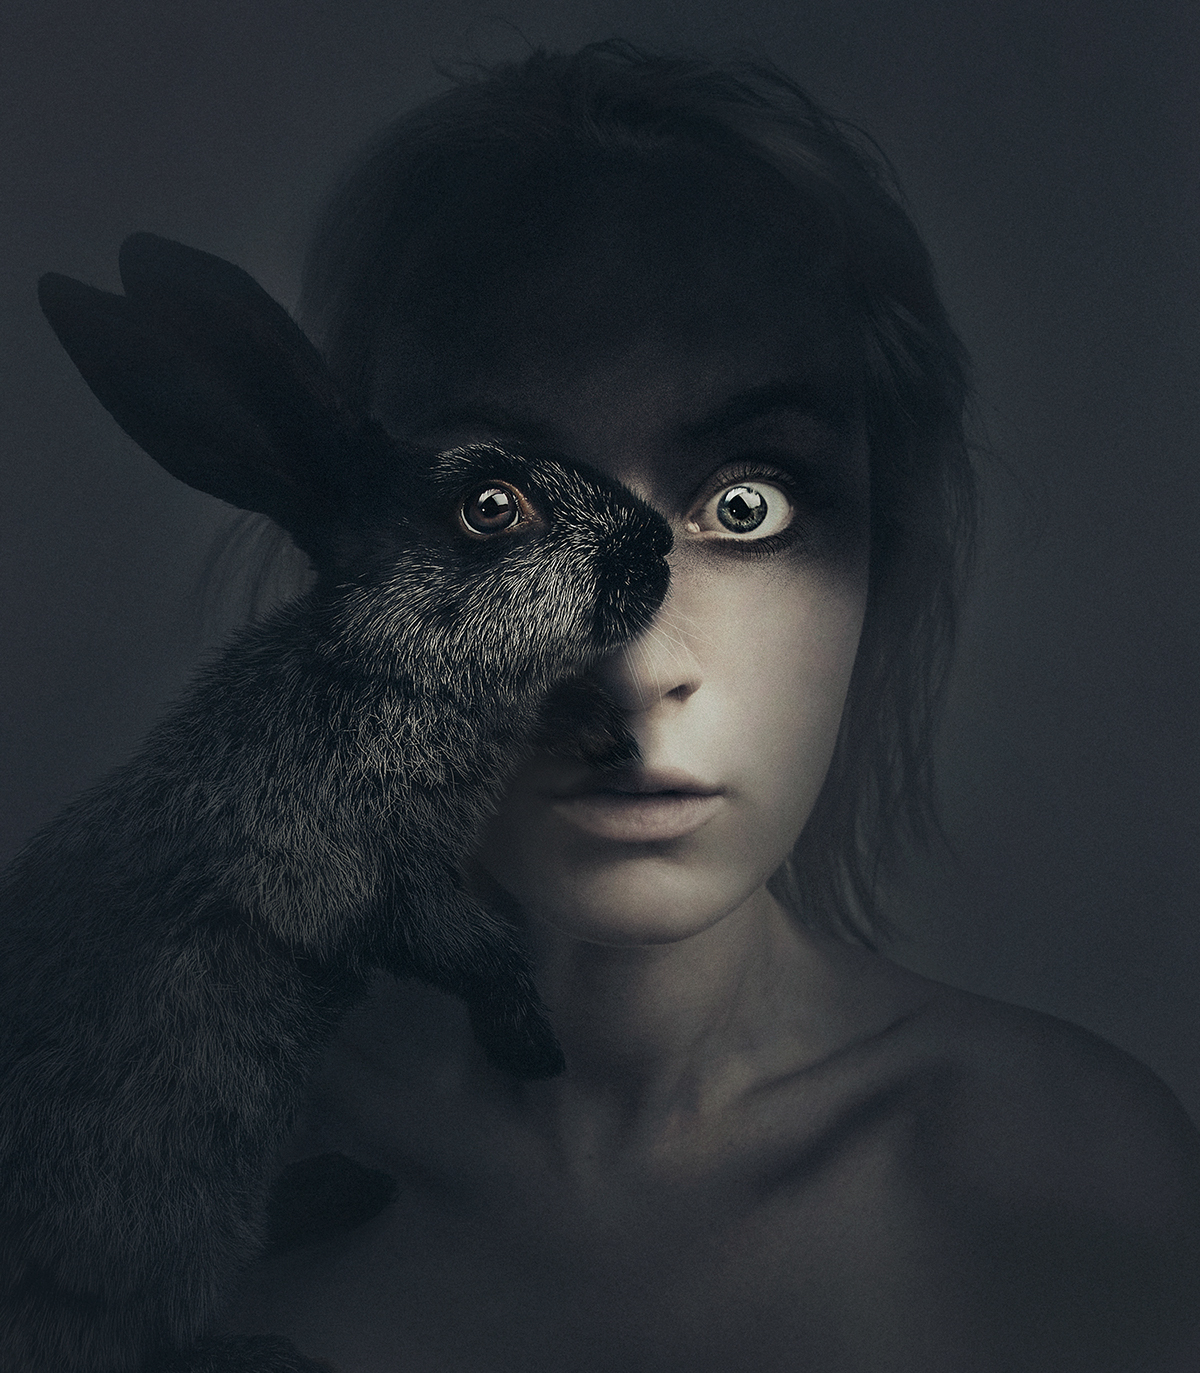 Animeyed by Flora Borsi